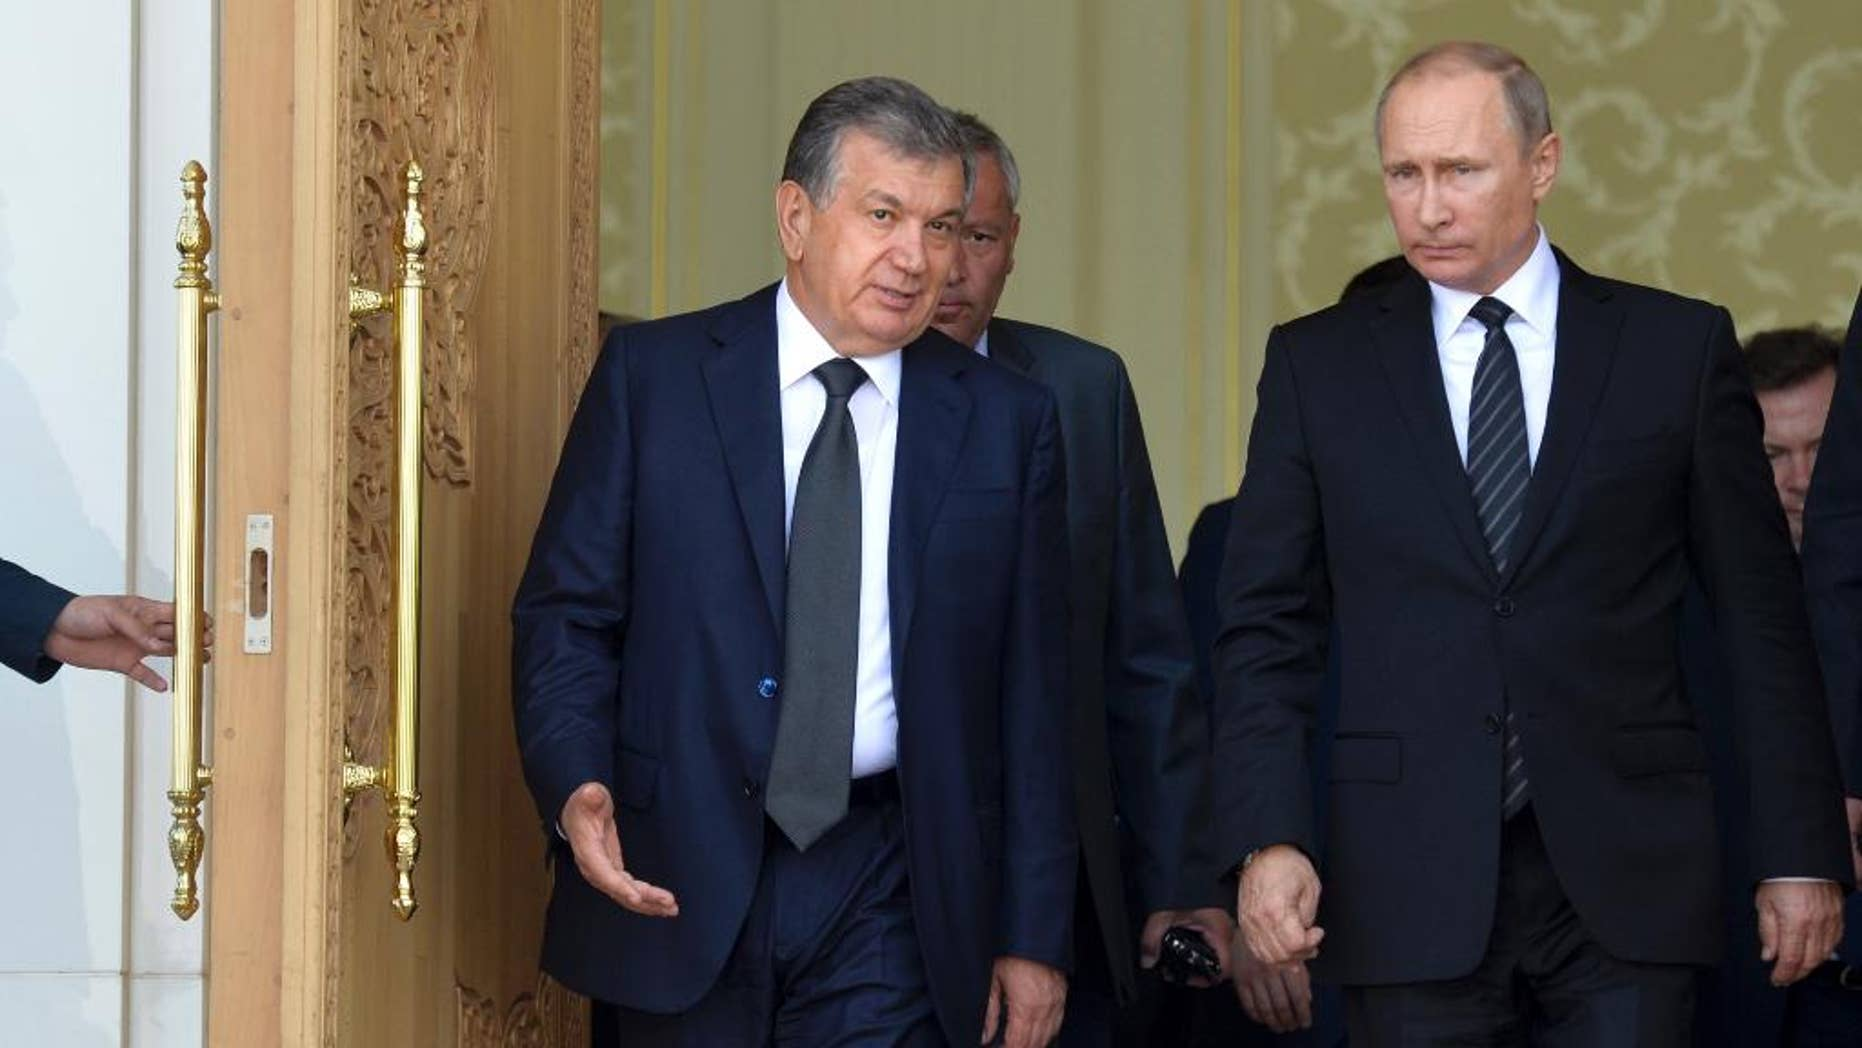 Uzbekistan's Prime Minister Shavkat Mirziyayev, left, speaks with Russian President Vladimir Putin in Samarkand, Uzbekistan, Tuesday, Sept. 6, 2016. Putin arrived to express his condolences and visit a grave of Uzbekistan's President Islam Karimov in Samarkand. (Alexei Druzhinin/Sputnik, Kremlin Pool Photo via AP)